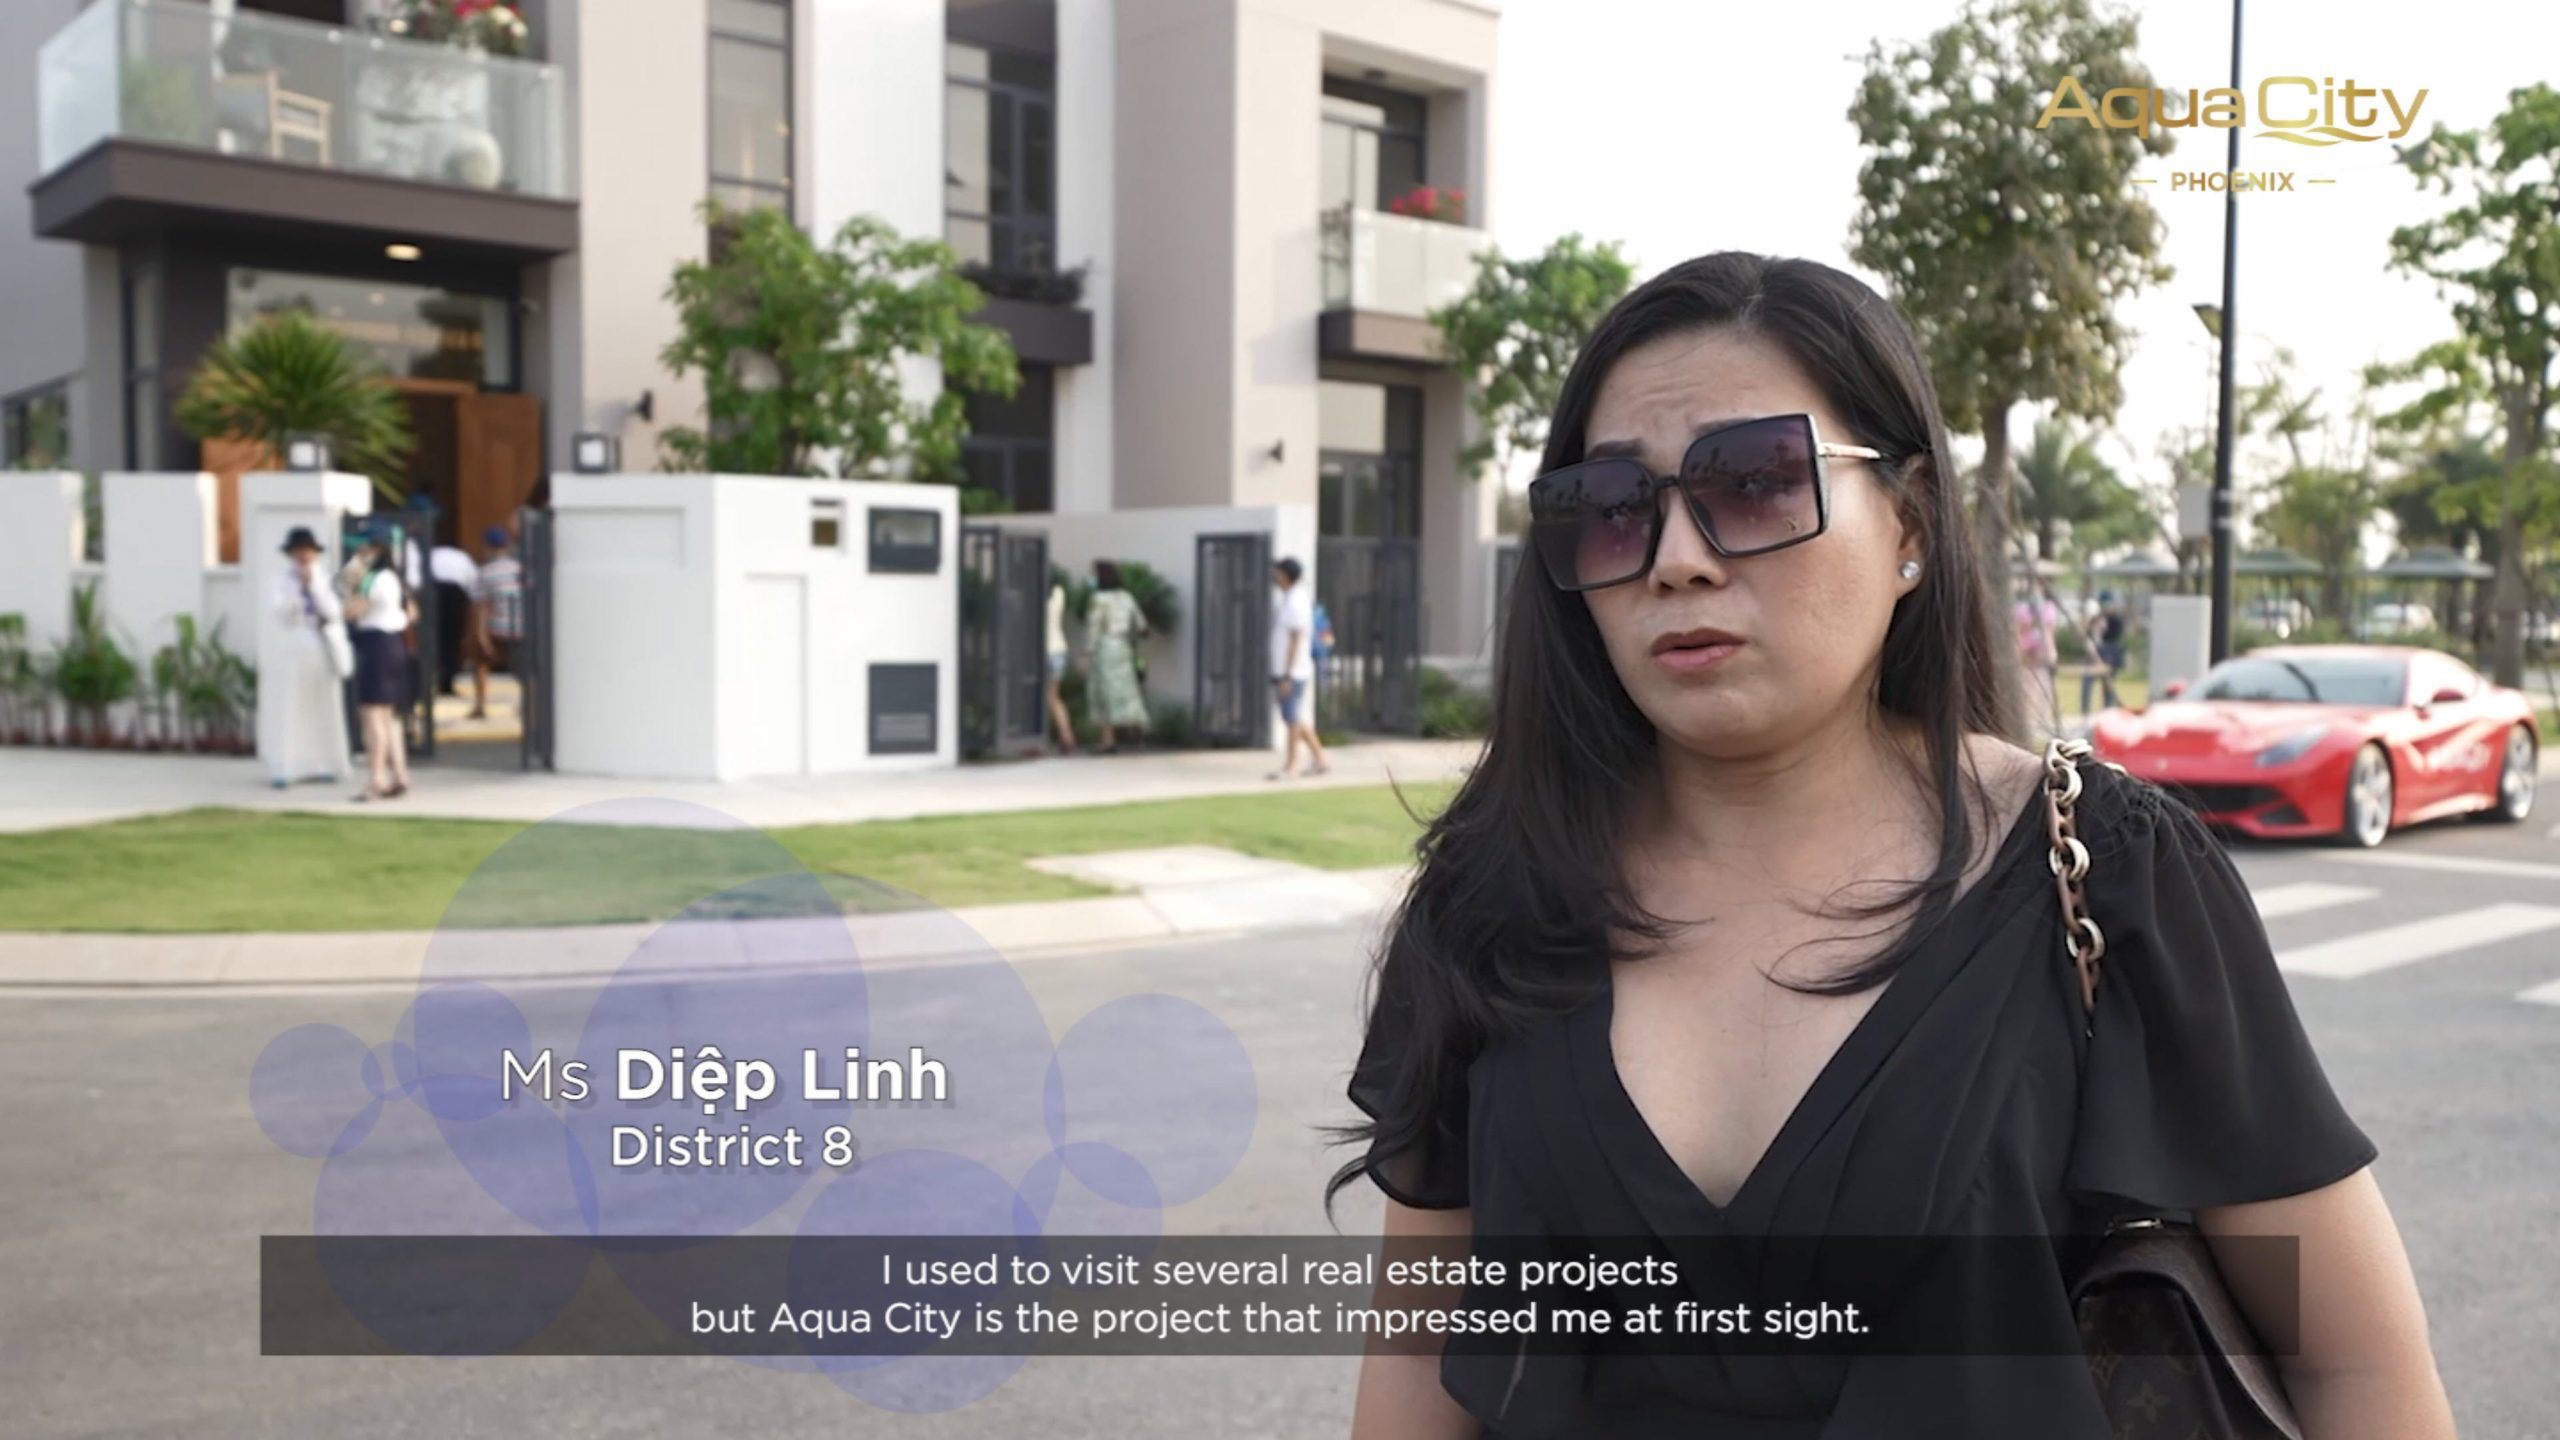 SOUTH SAIGON RESIDENTS SAID: THE GREEN LIVING SPACE IN AQUA CITY – PHOENIX AREA IS SO COOL!